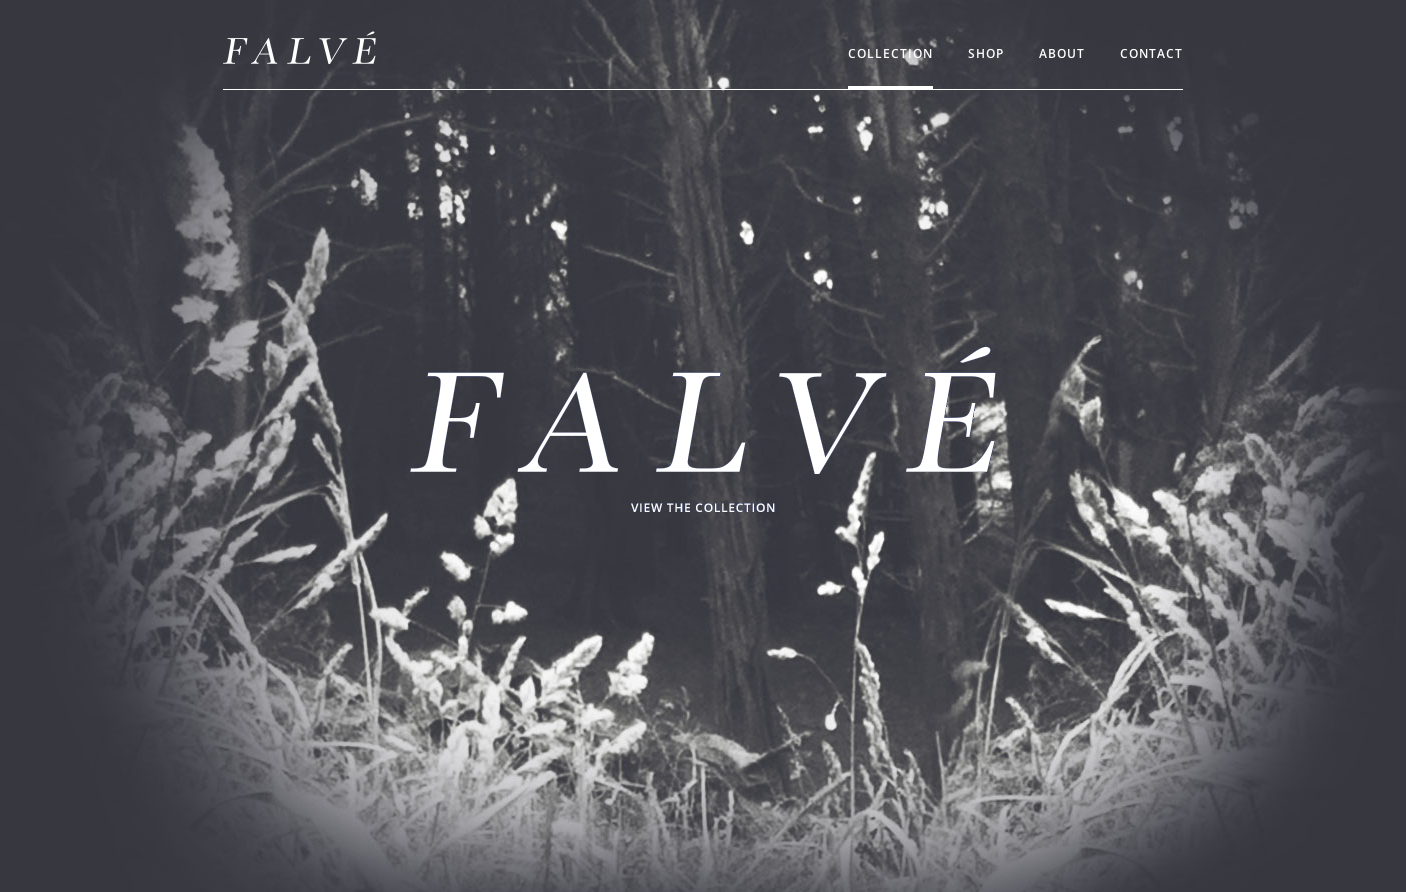 http://www.falve.co.nz/collection/